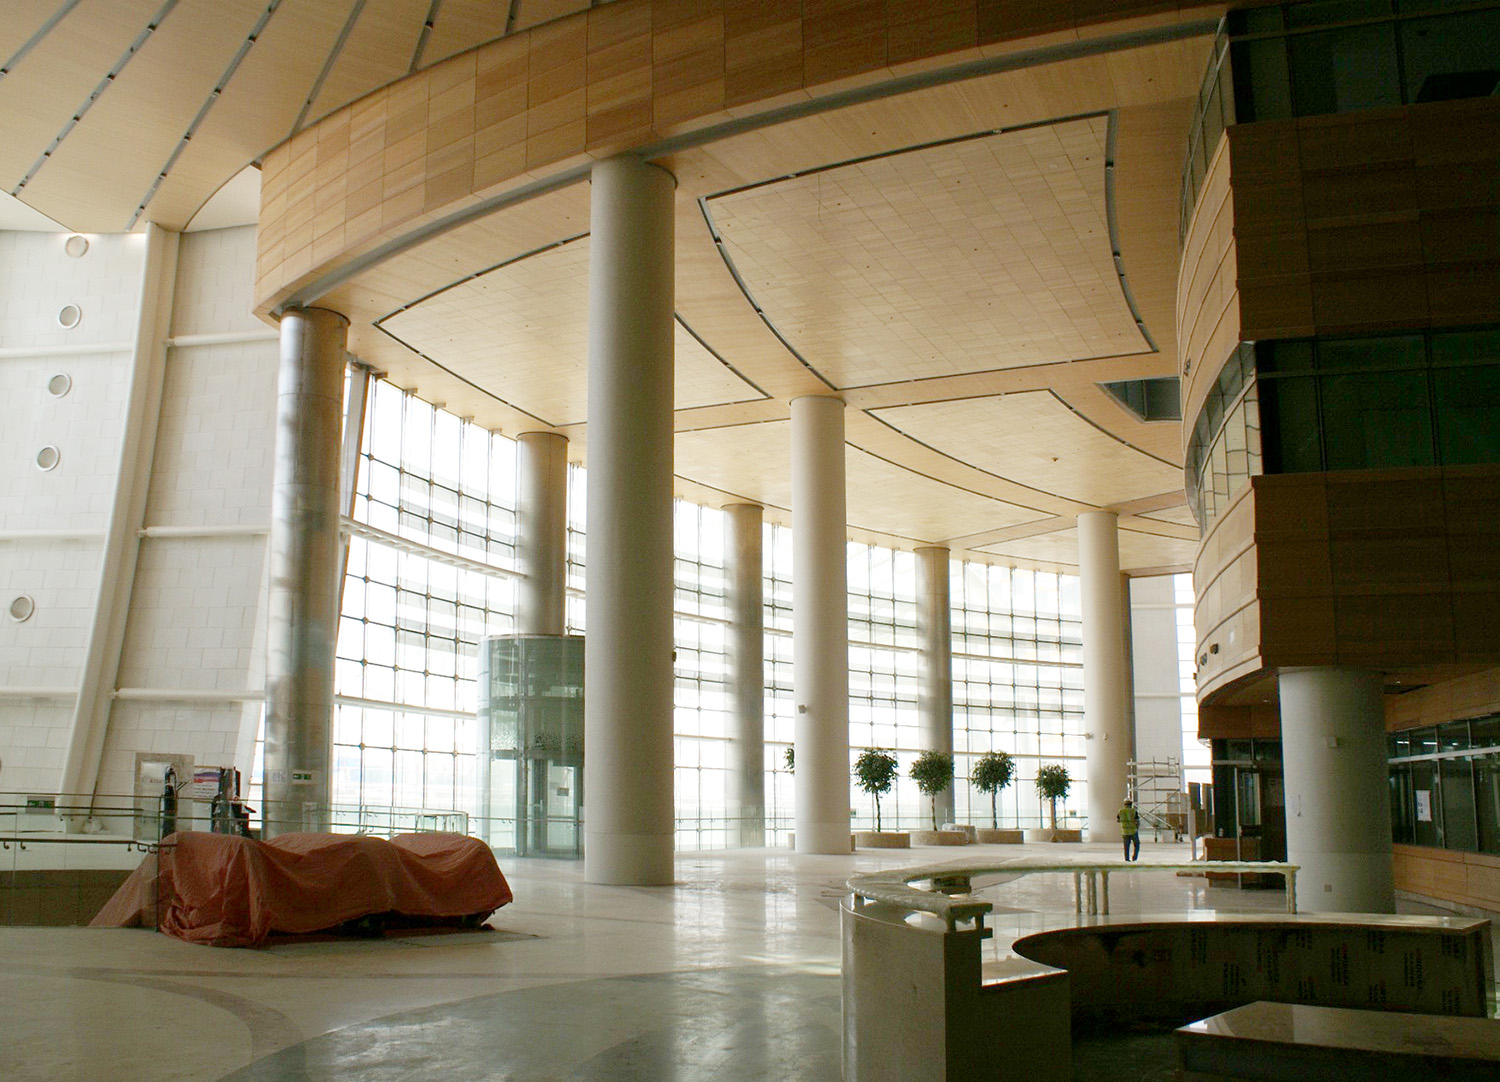 sidra_entrance_foyer2.jpg